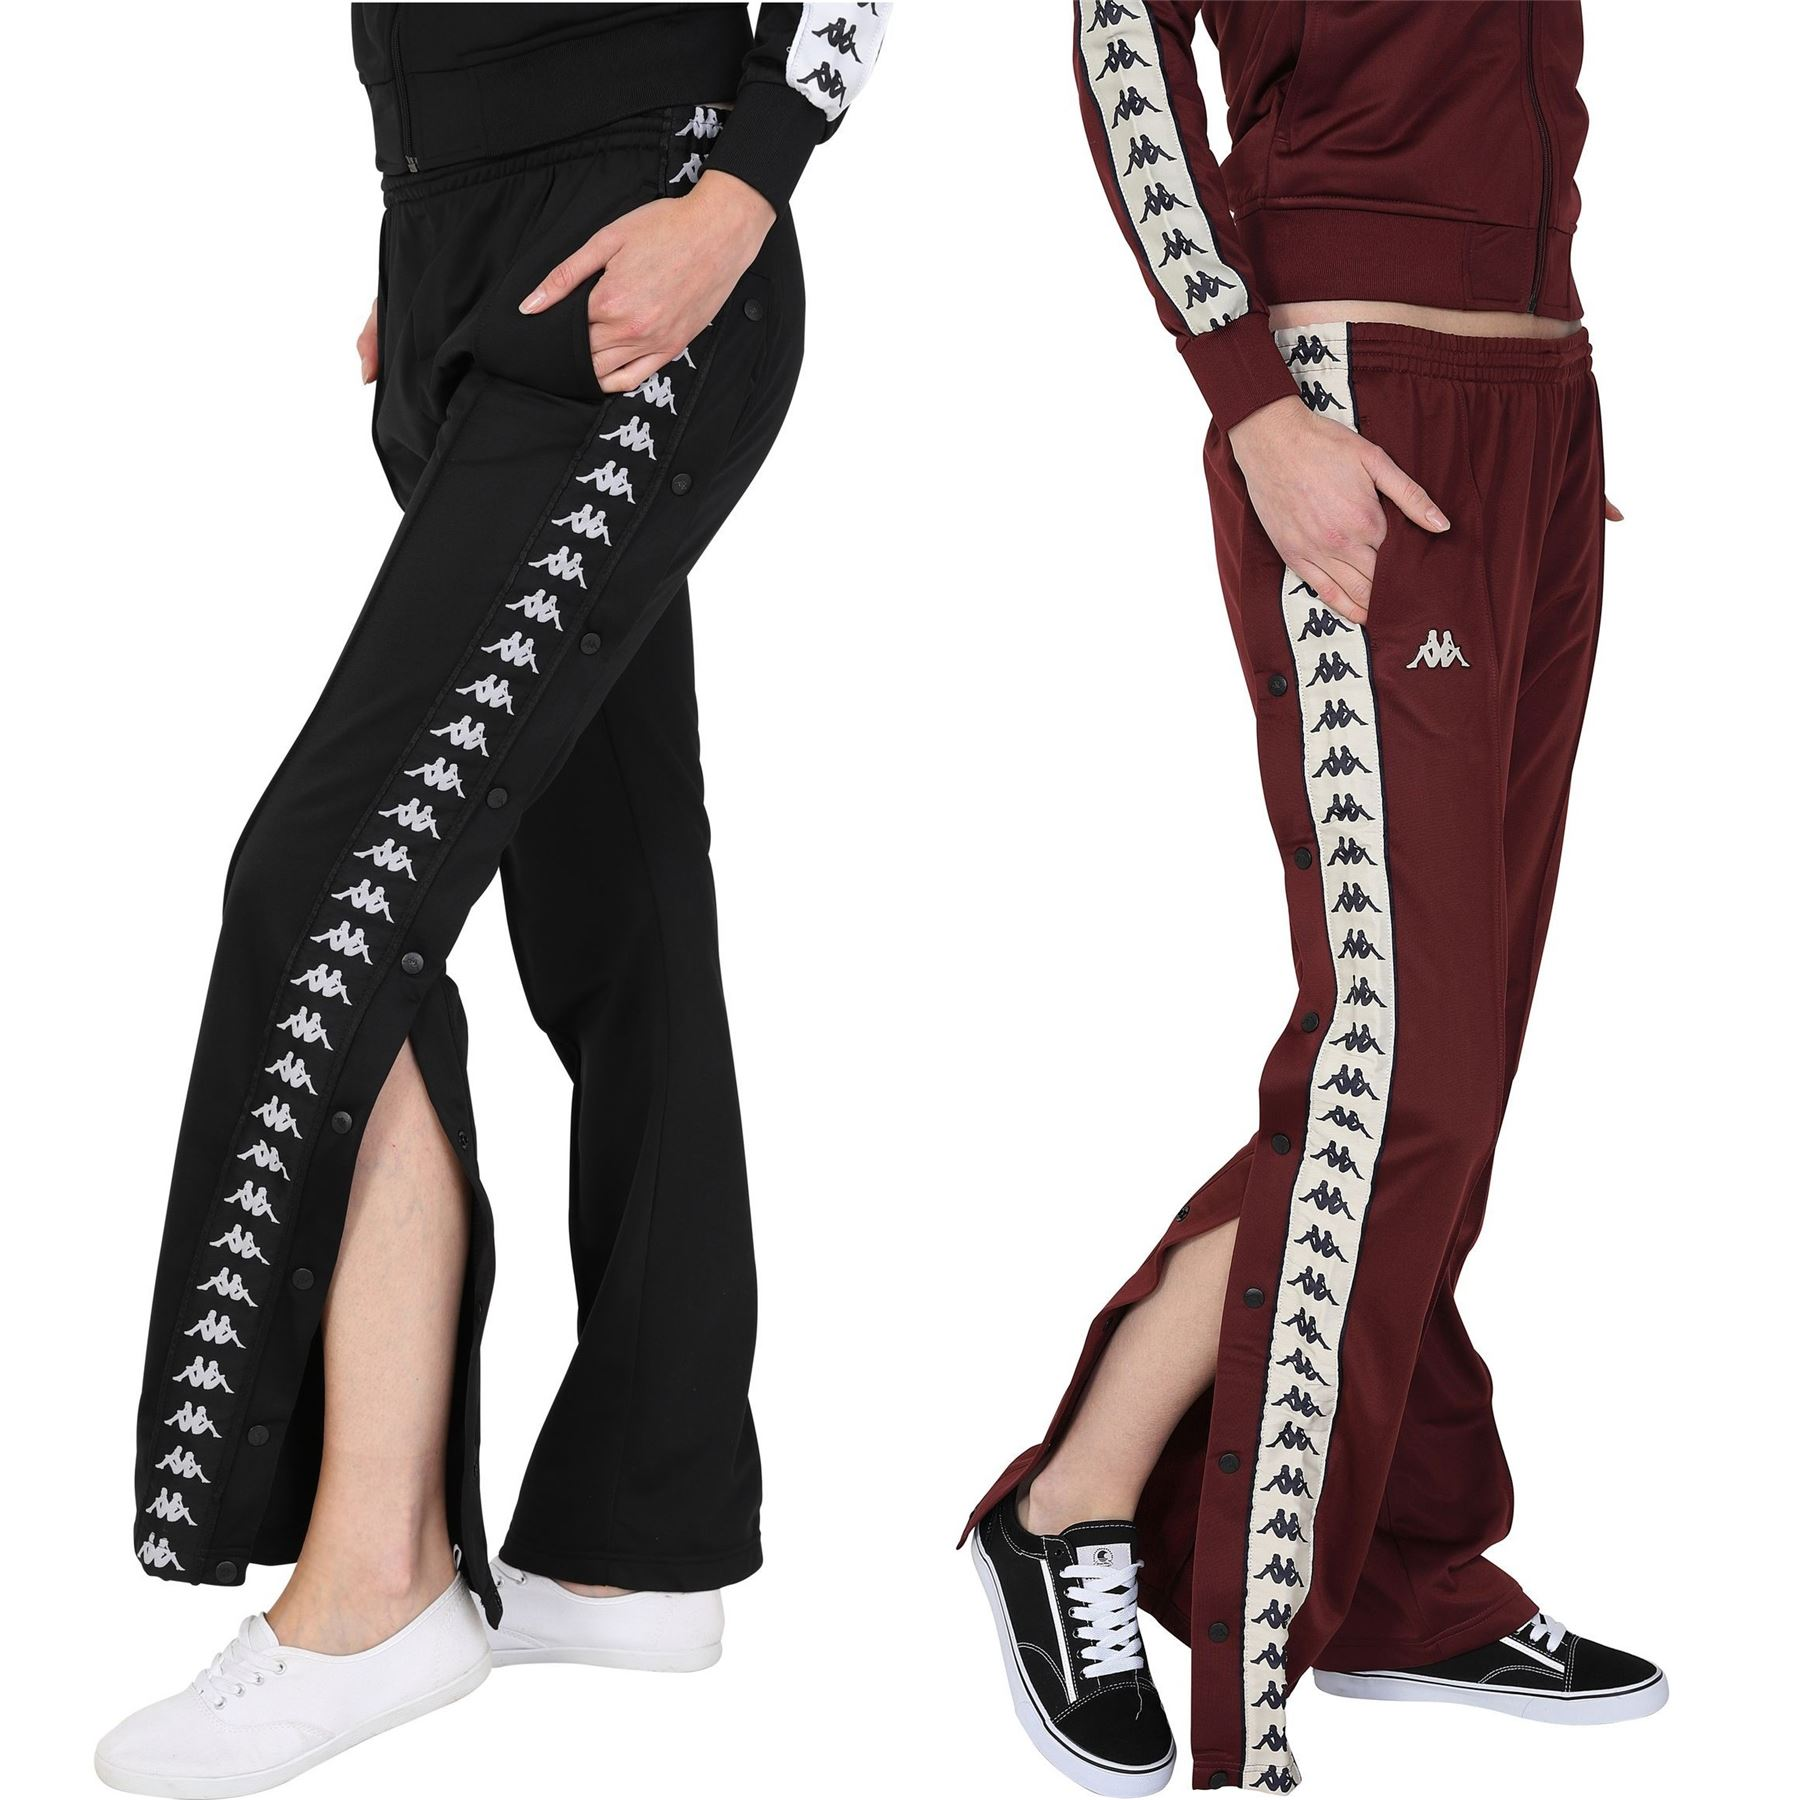 a2758b1c09 Details about Kappa Women's Wastoria Track Pants Jogger Bottoms